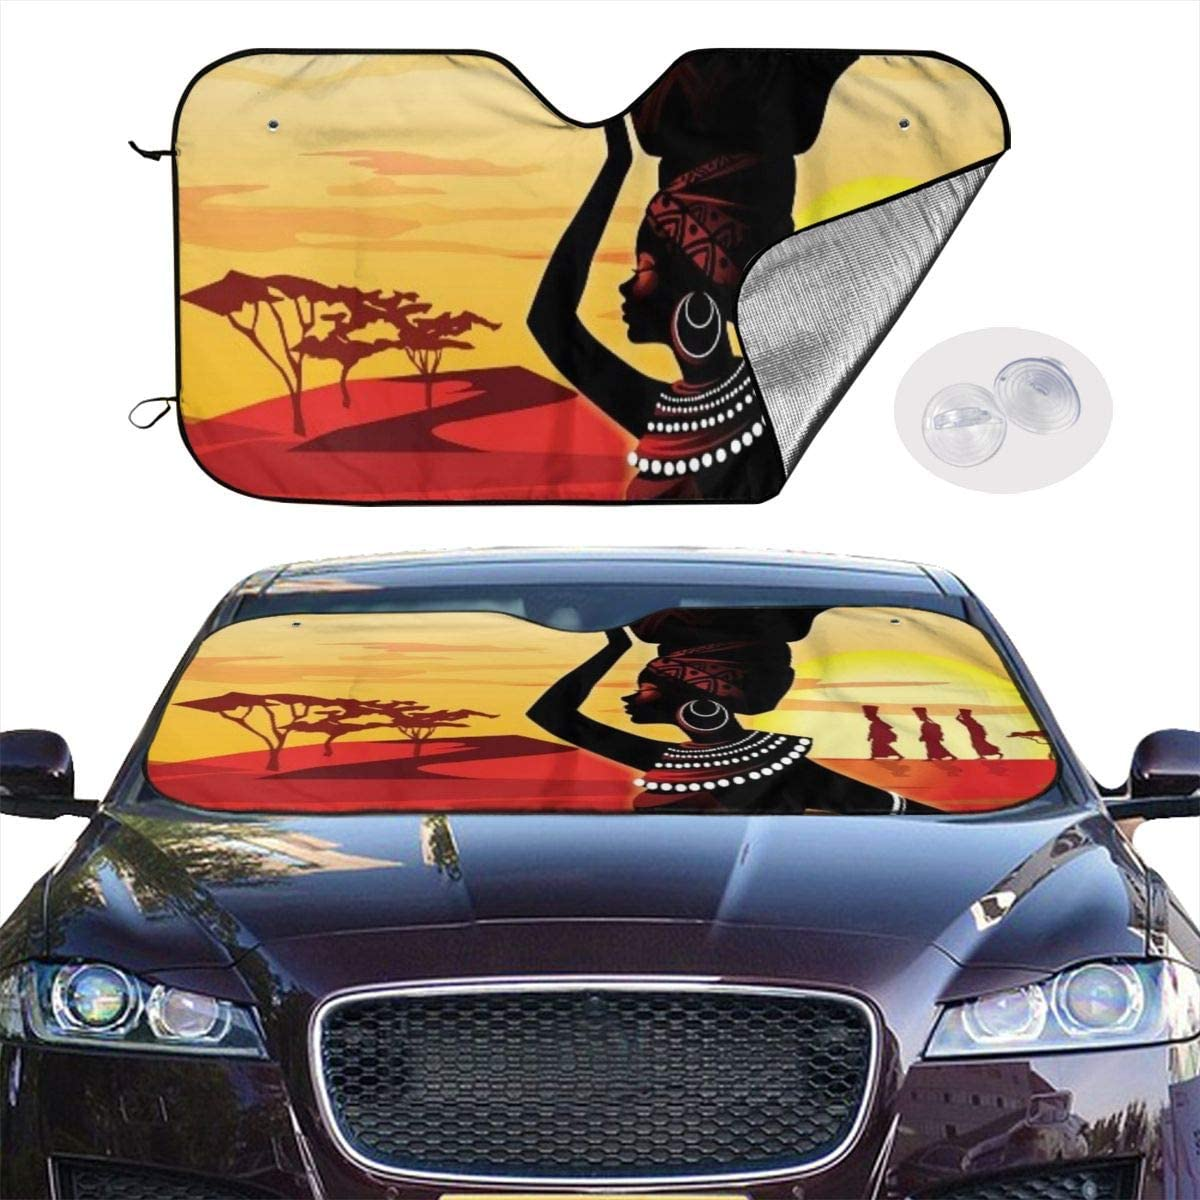 Nice Music Windshield Sun Shade Cover Summer Car Windows Visor Kit Ornament Decor Outdoor Vehicle Interior Accessories Sunshade Auto for Women Men